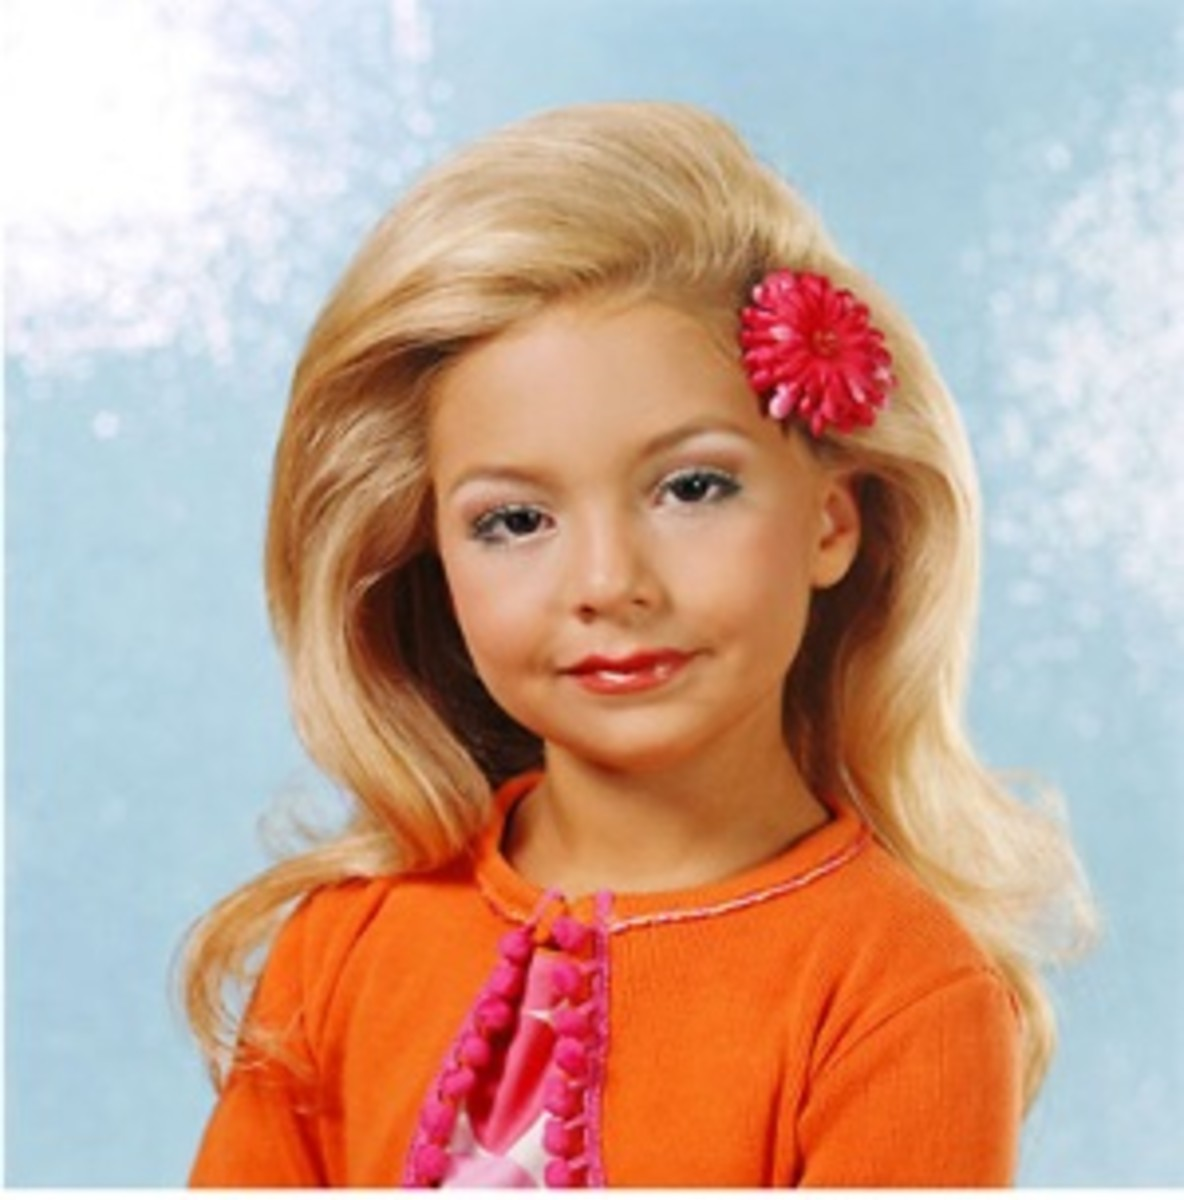 Toddler Beauty Pageants And Child Botox